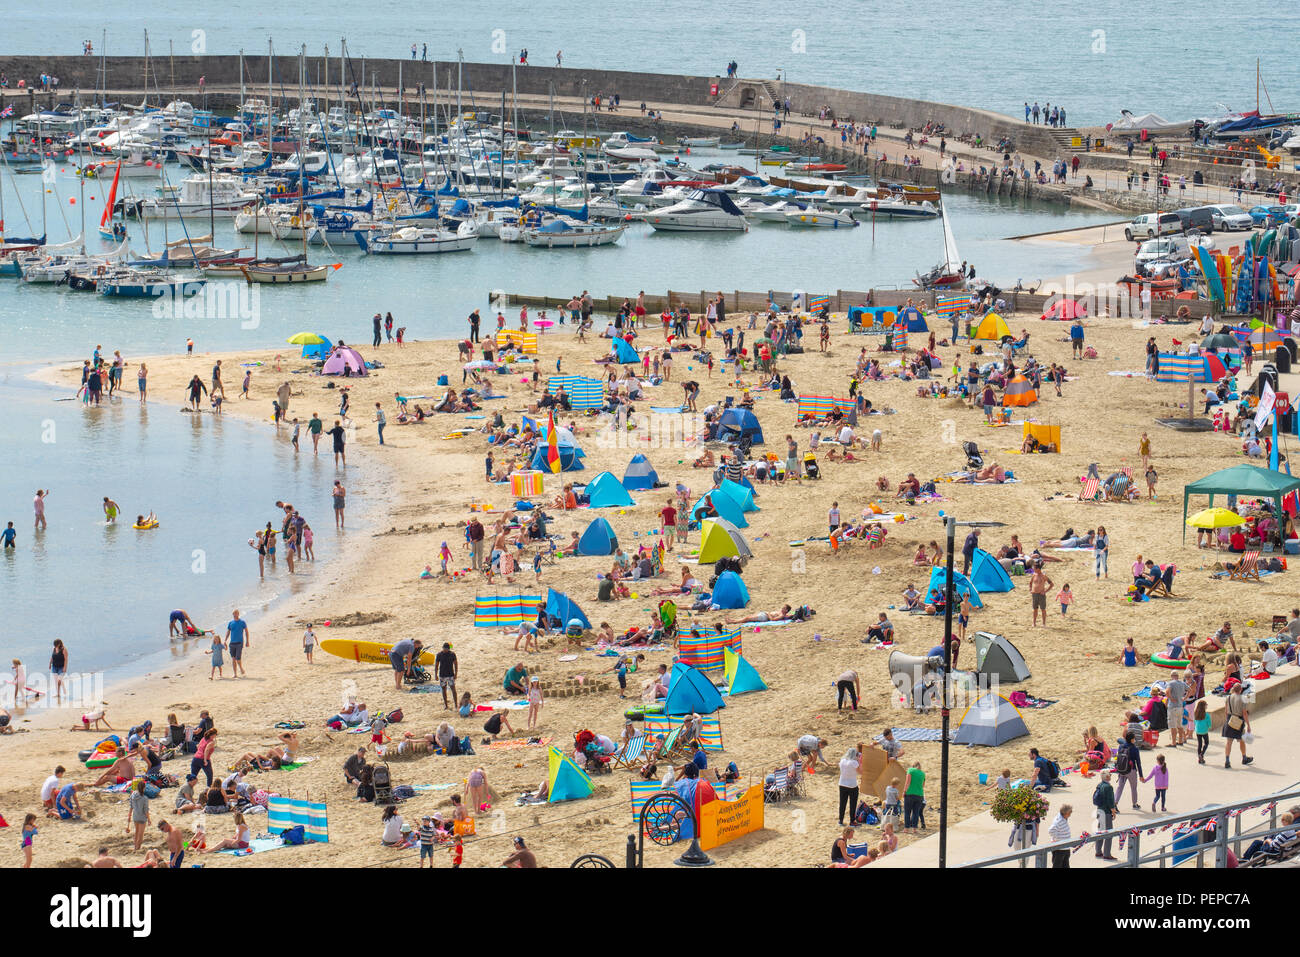 Lyme Regis, Dorset, UK. 17th Aug, 2018. UK Weather: Holidaymakers flock to the beach to enjoy a morning of hot sunny spells in Lyme Regis. The picturesque beach at the seaside resort of Lyme Regis was busy again this morning as thick cloud is broken by long spells of hot sunshine. Credit: Celia McMahon/Alamy Live News - Stock Image